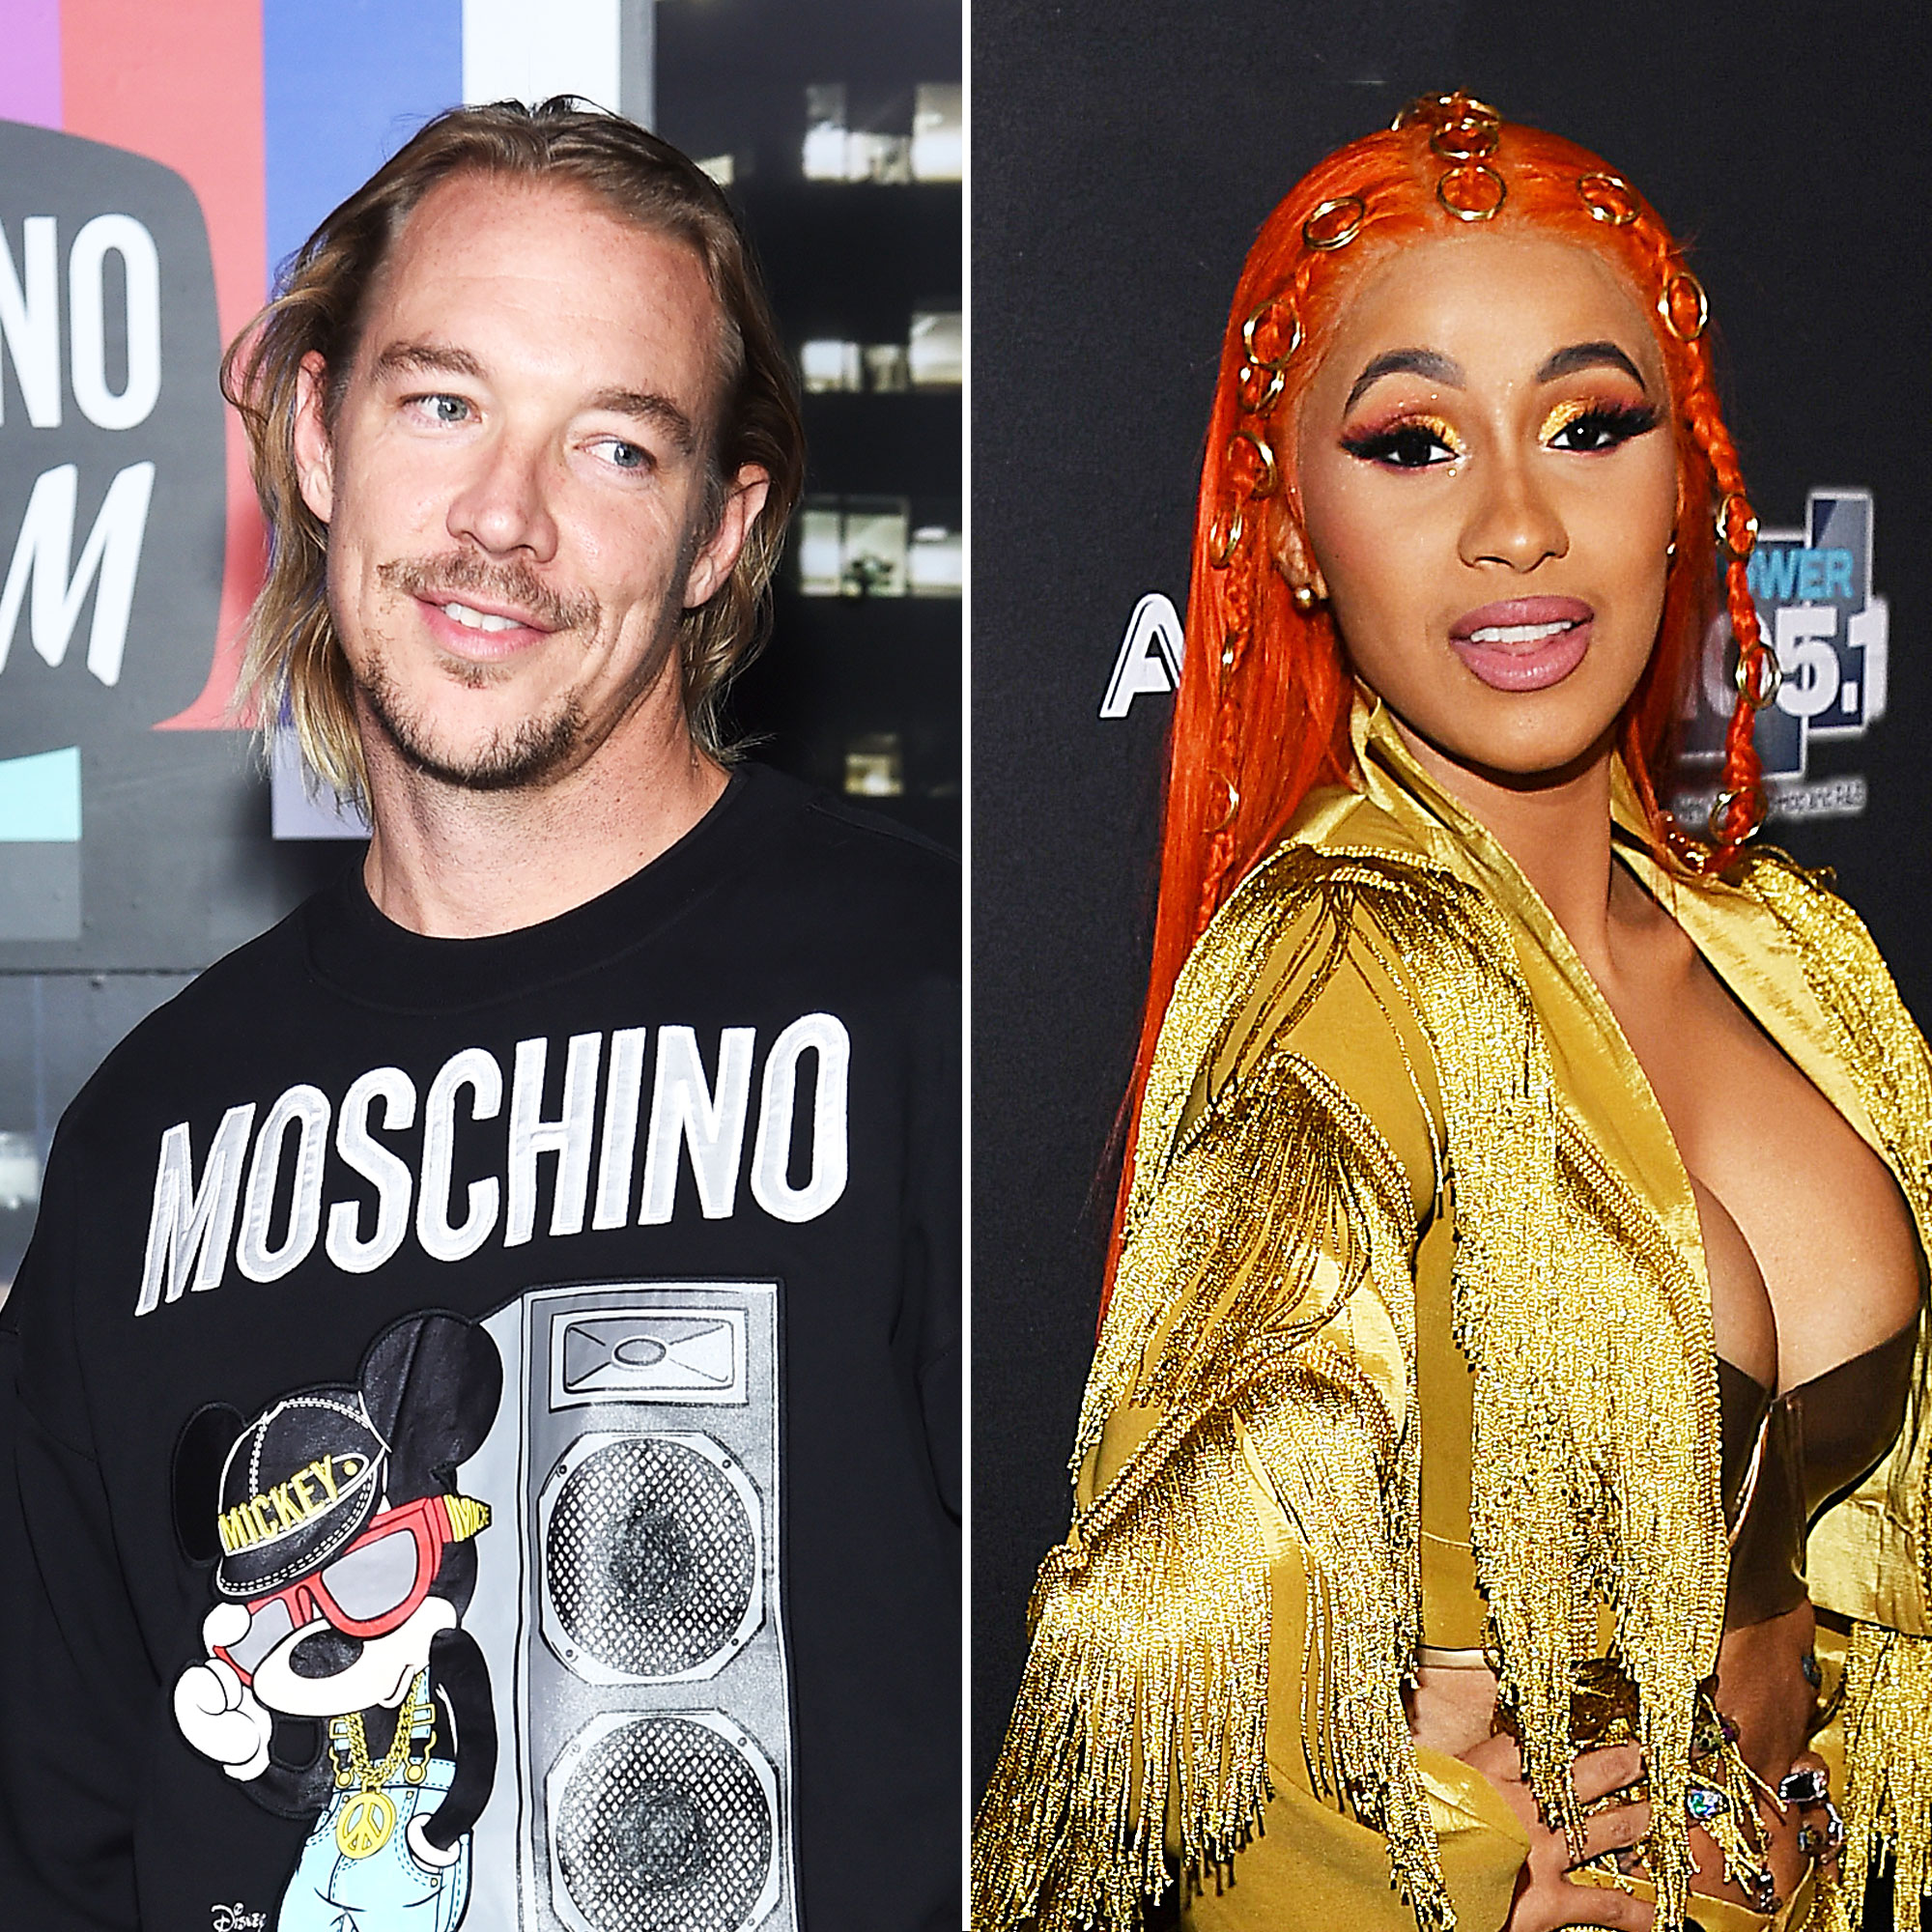 Diplo Leaves a Flirty Comment on Cardi B's Instagram After Her Split From Husband Offset - Diplo and Cardi B